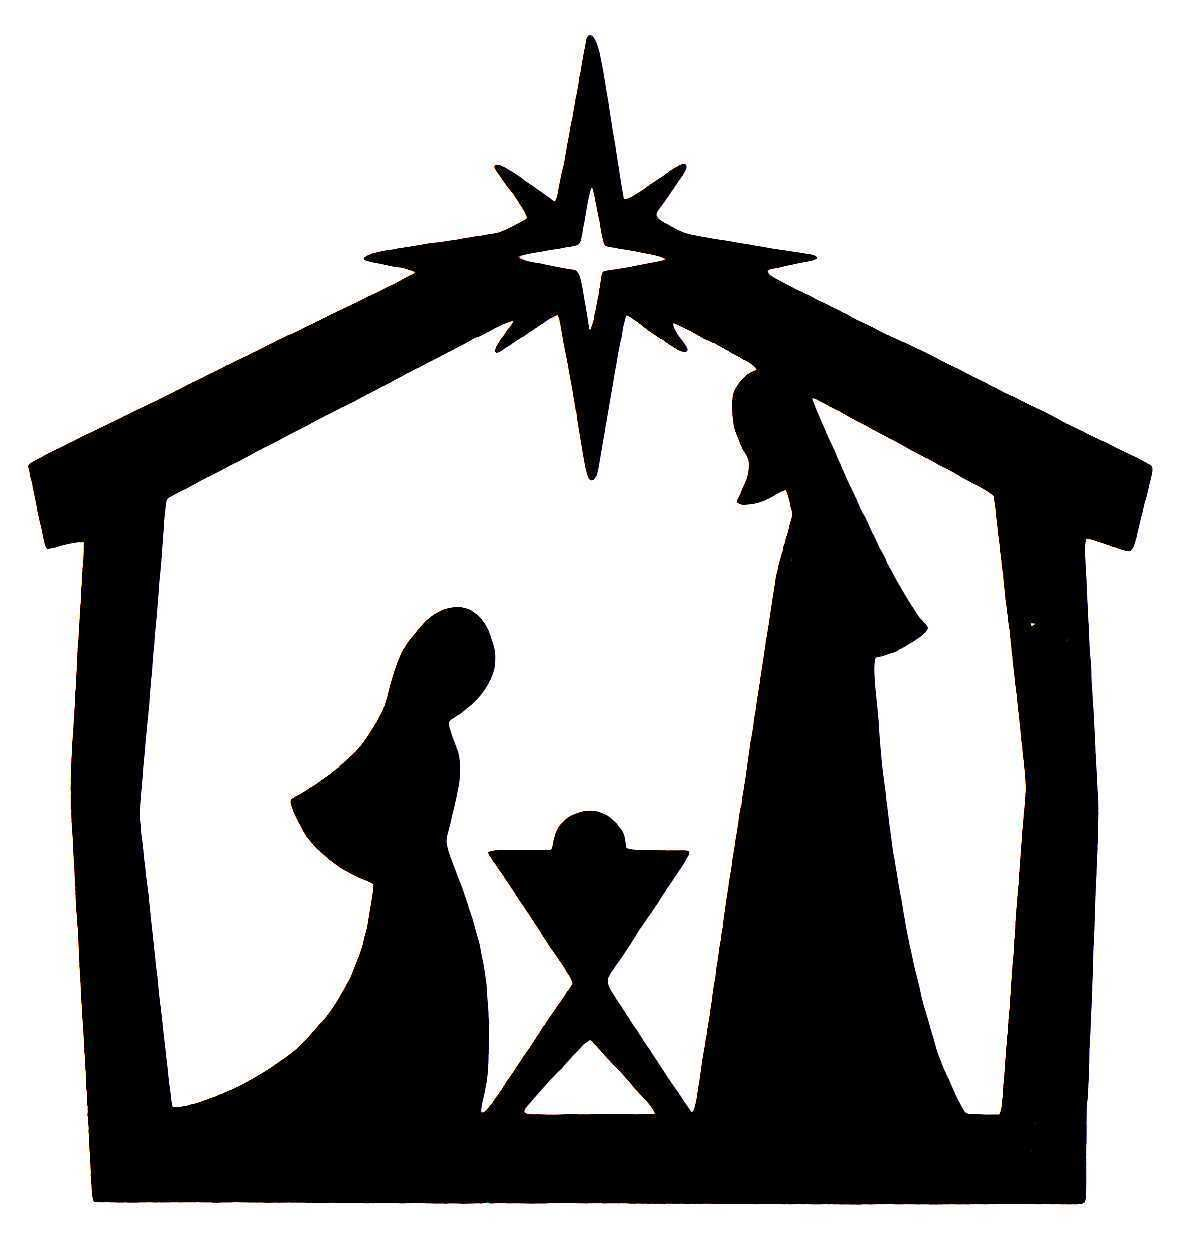 1182x1239 10 X Christmas Die Cut Nativity Silhouettes In Black Nativity